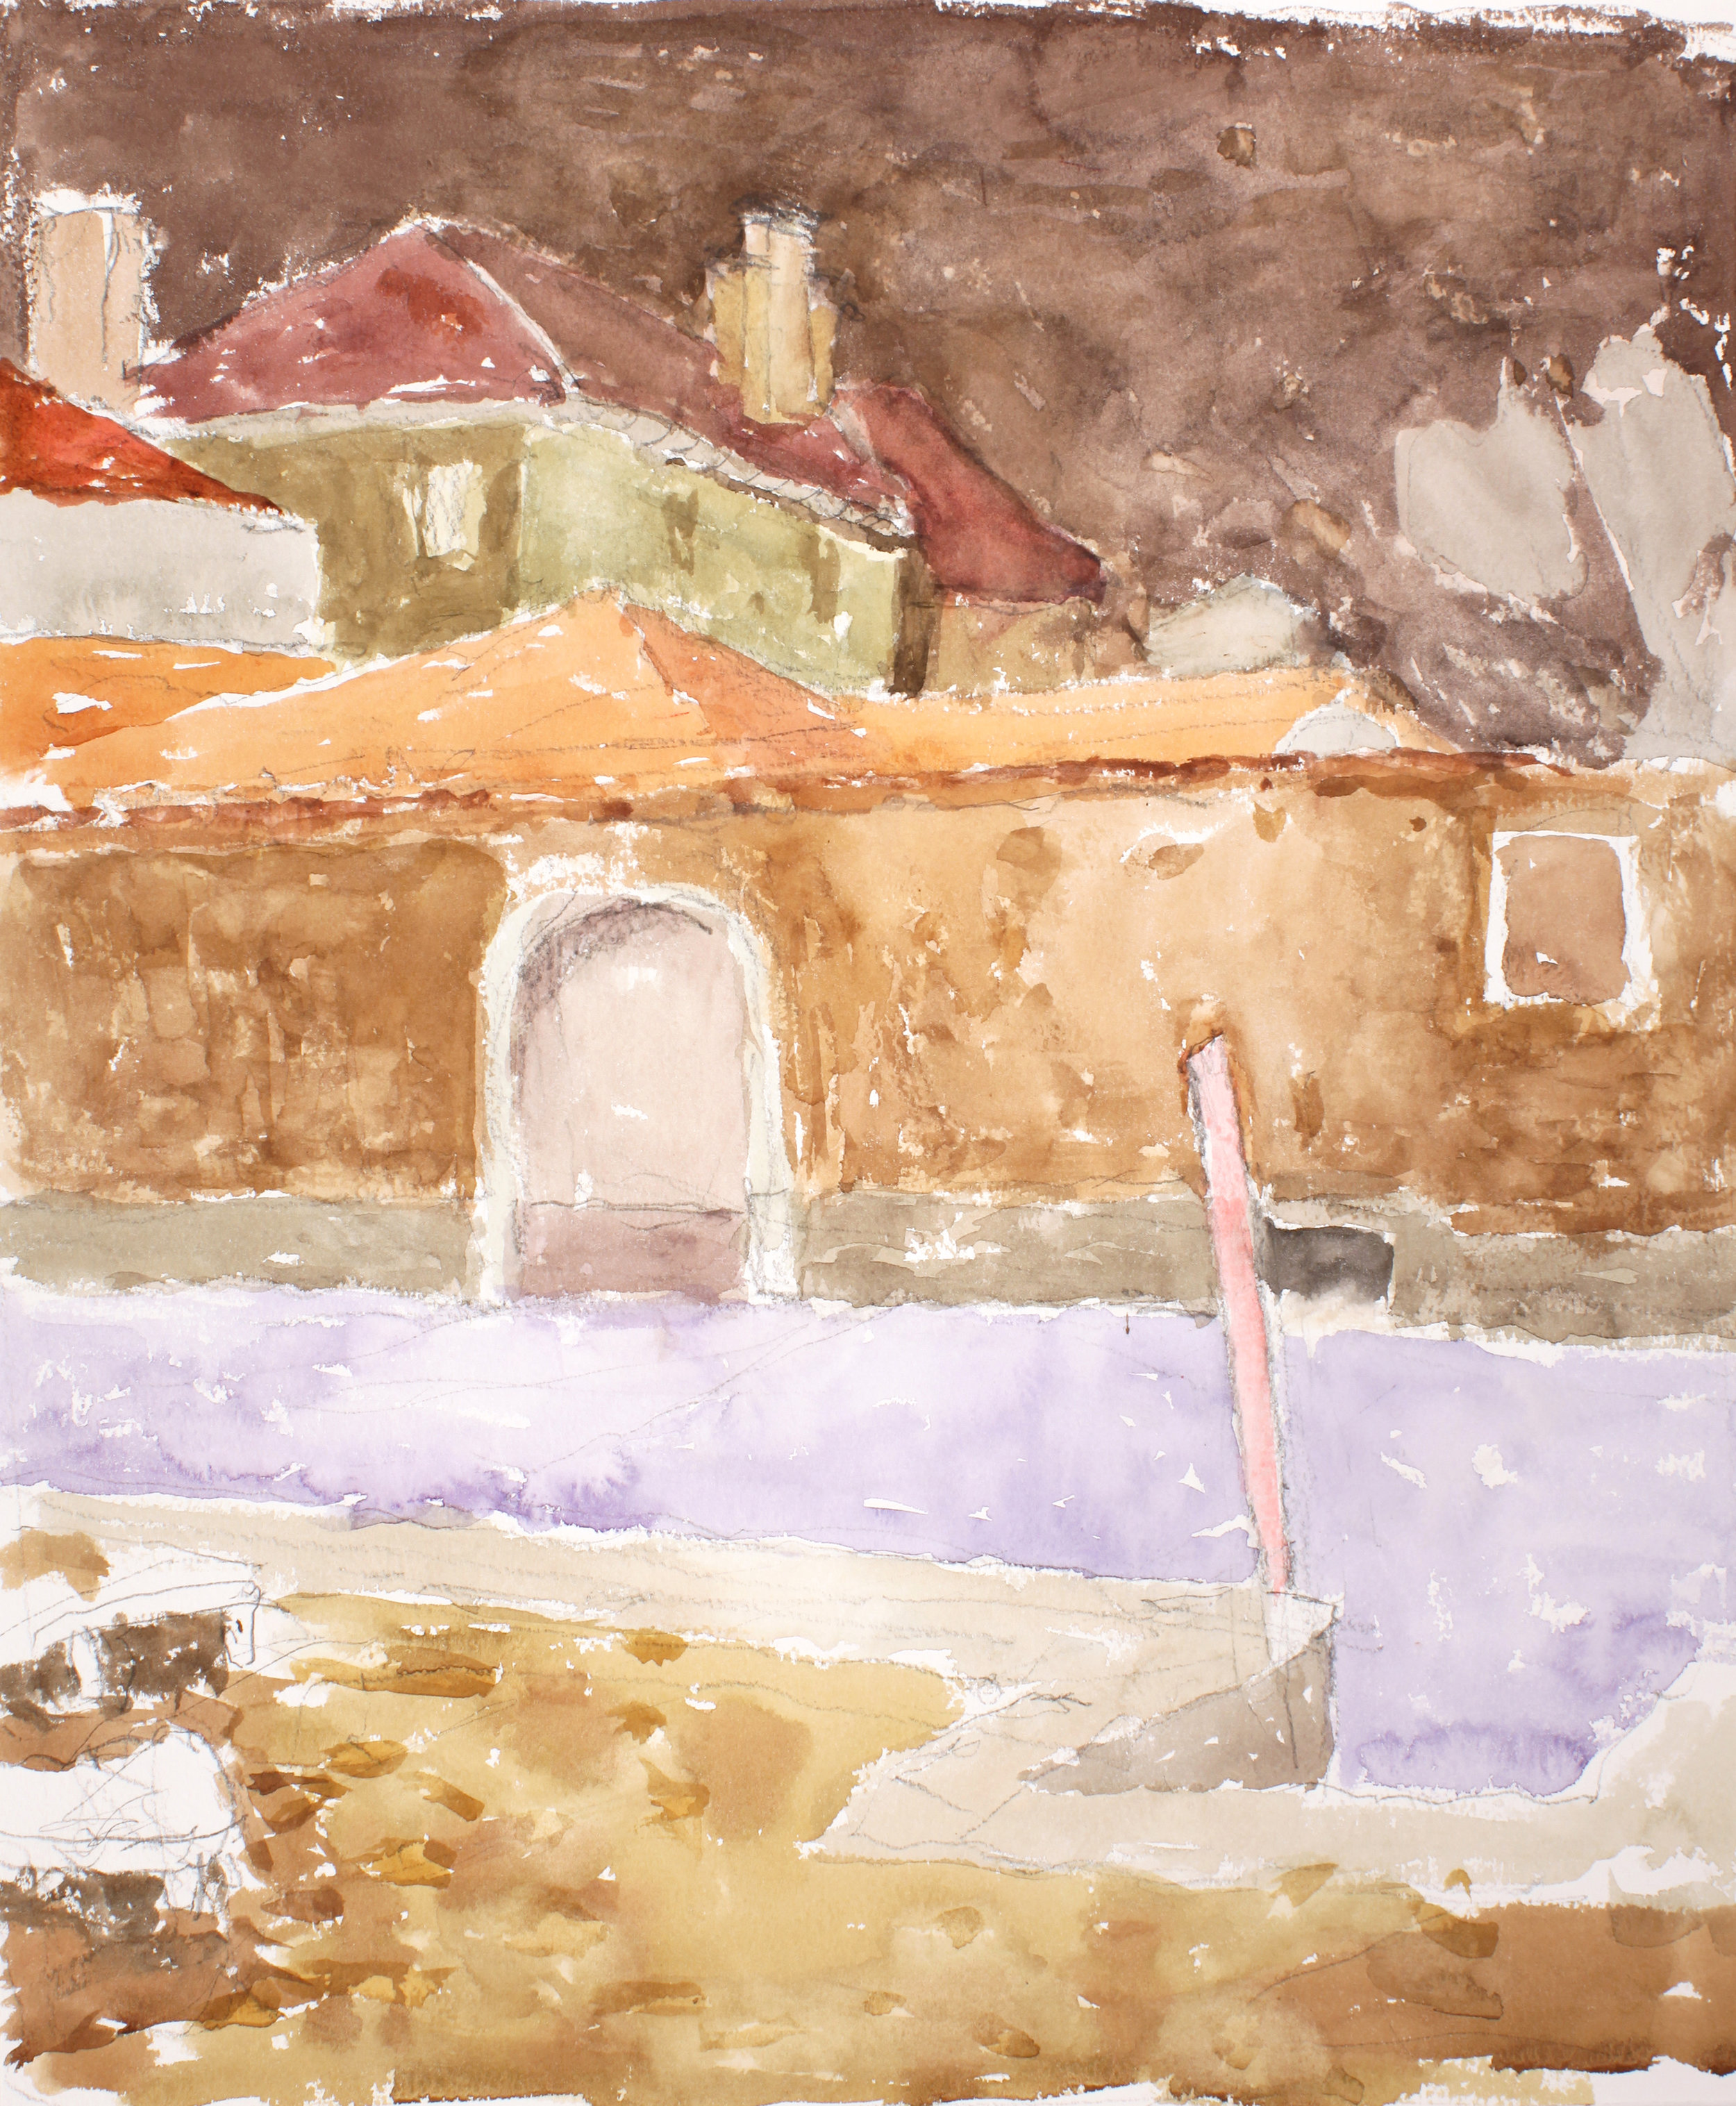 1990_Rio_Di_Sant_Alvise_watercolour_and_pencil_on_paper_20x16in_WPF390.jpg